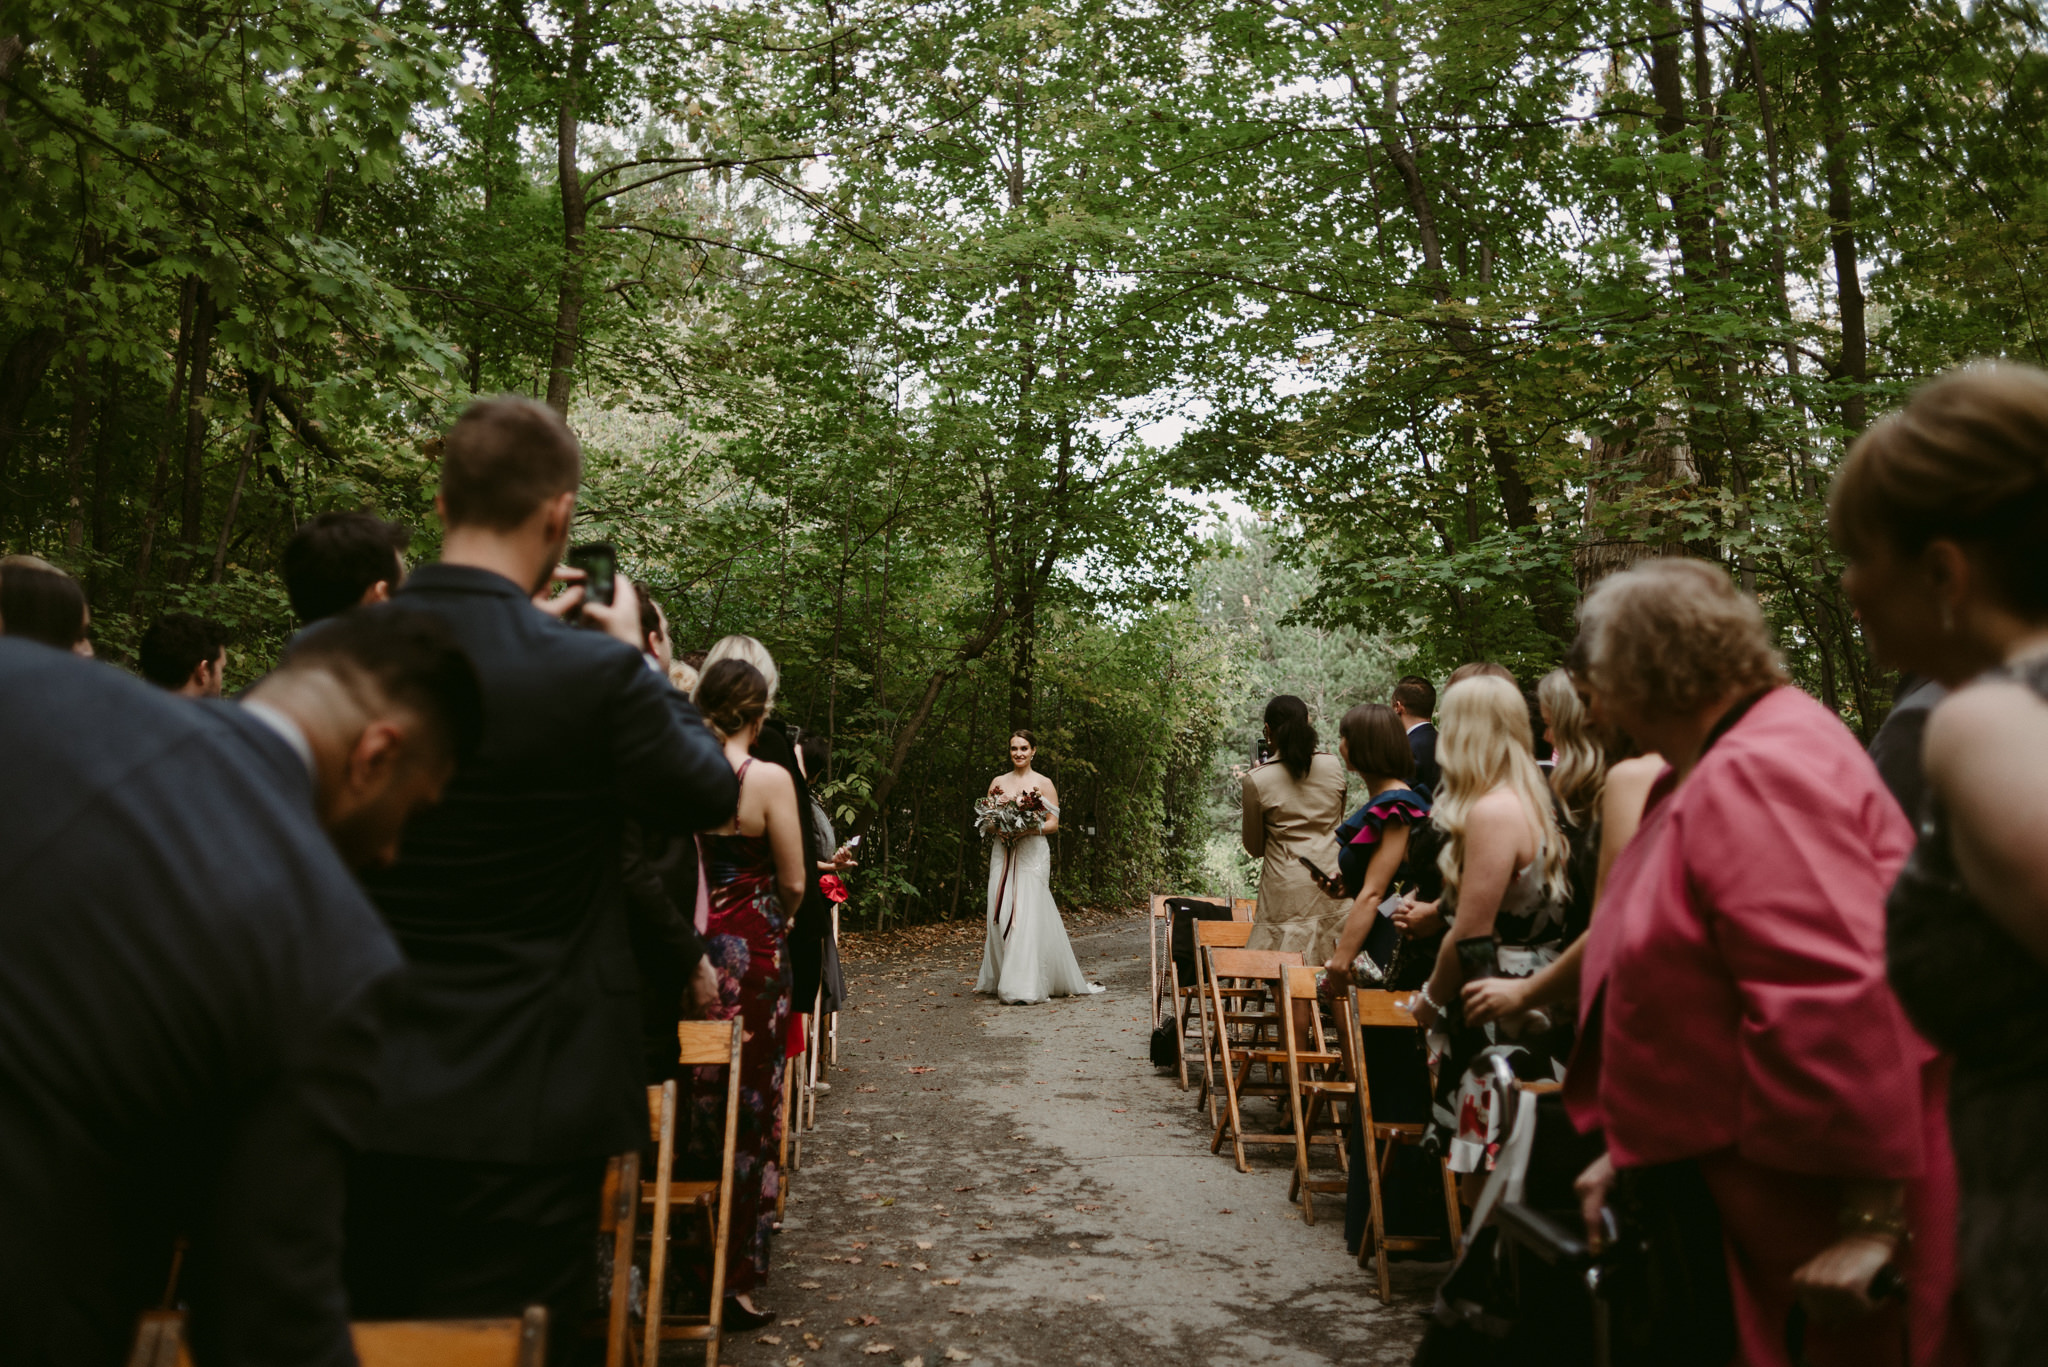 Bride walking down aisle by herself in forest wedding ceremony